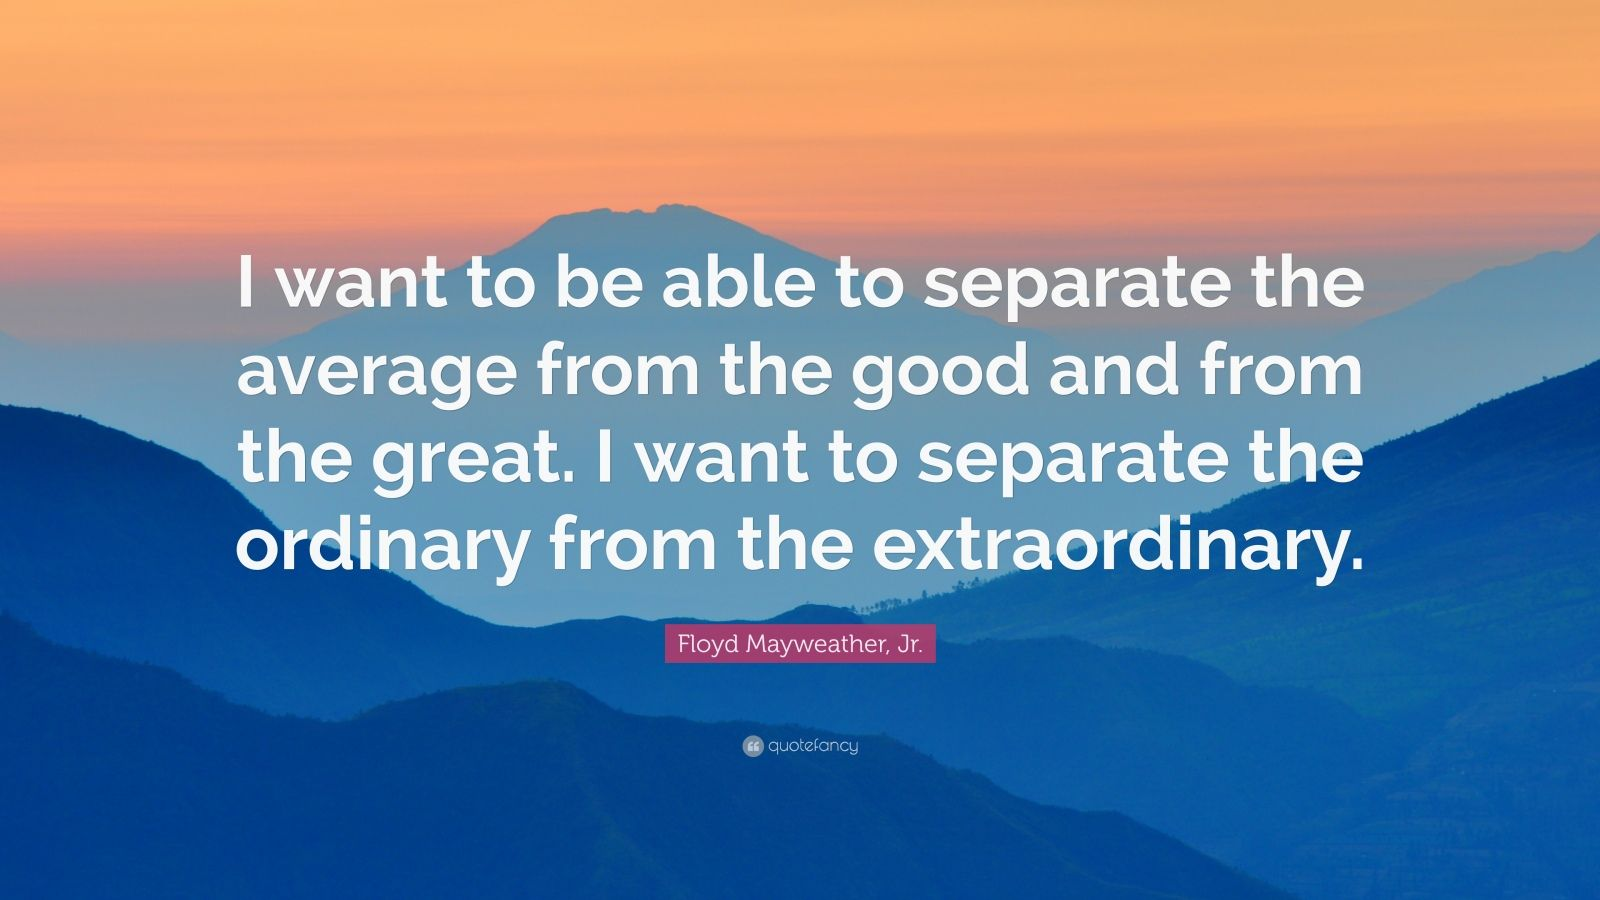 "Floyd Mayweather, Jr. Quote: ""I want to be able to separate the average from the good and from the great. I want to separate the ordinary from the extraordinary."""